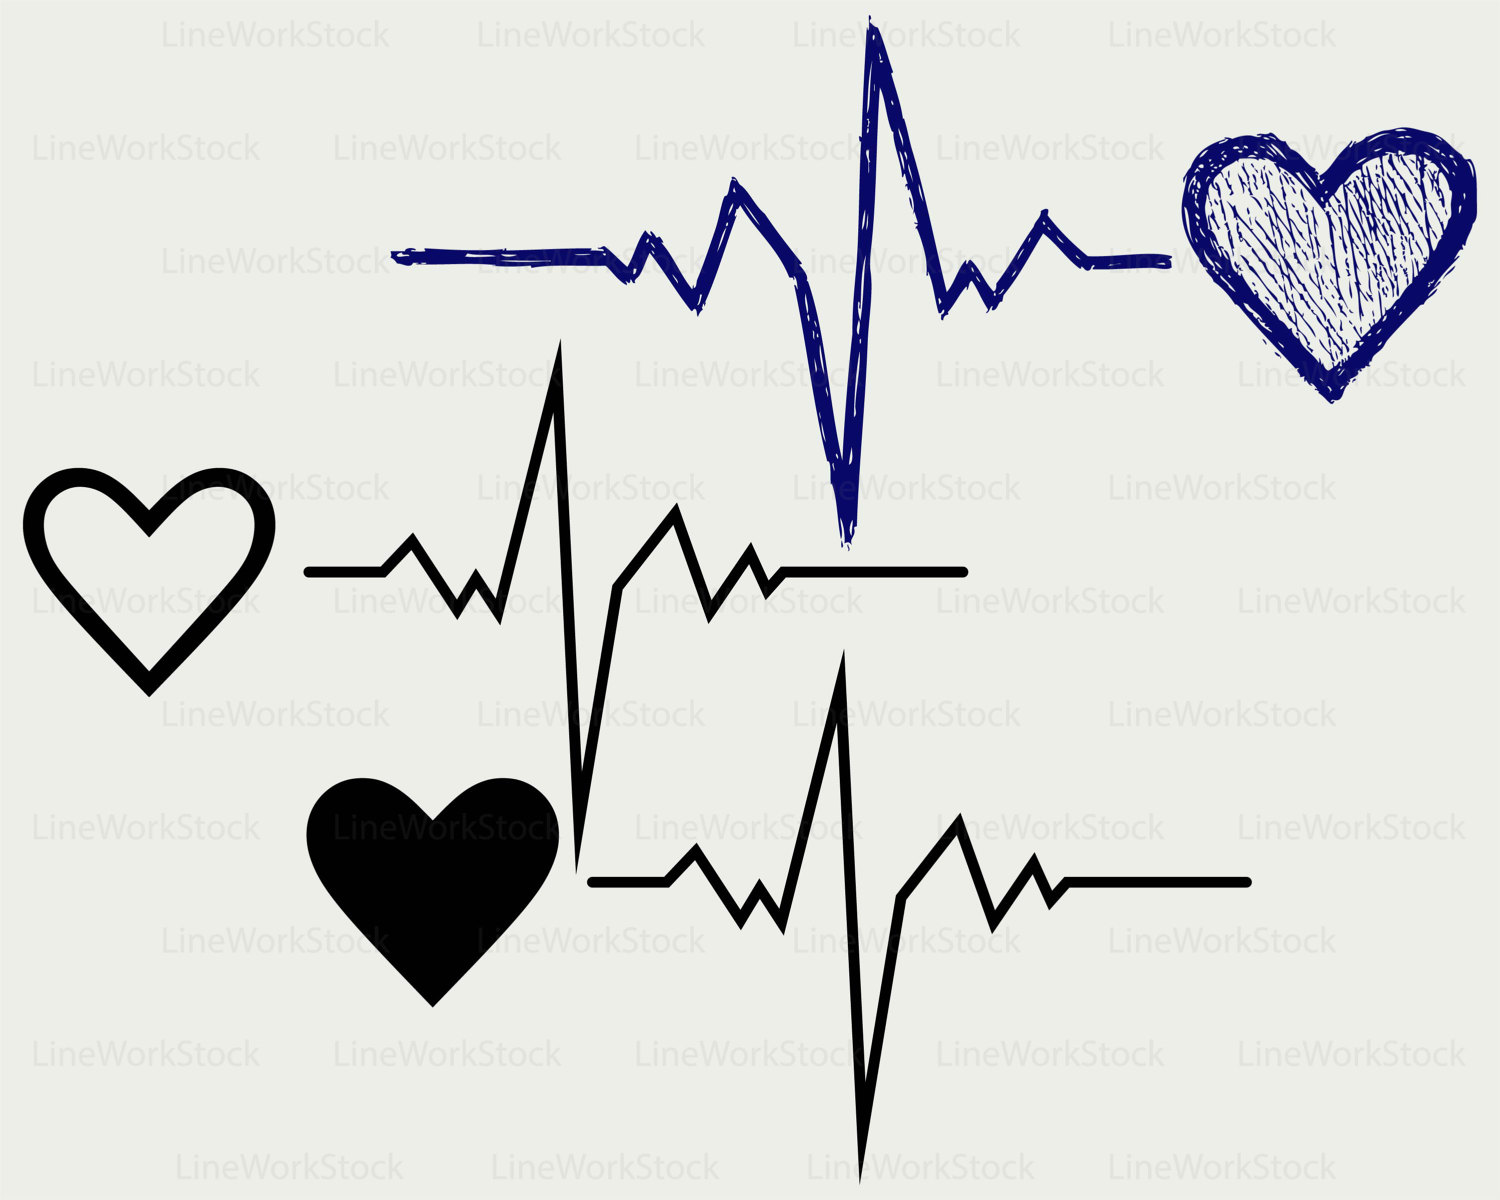 Heartbeat svg #5, Download drawings